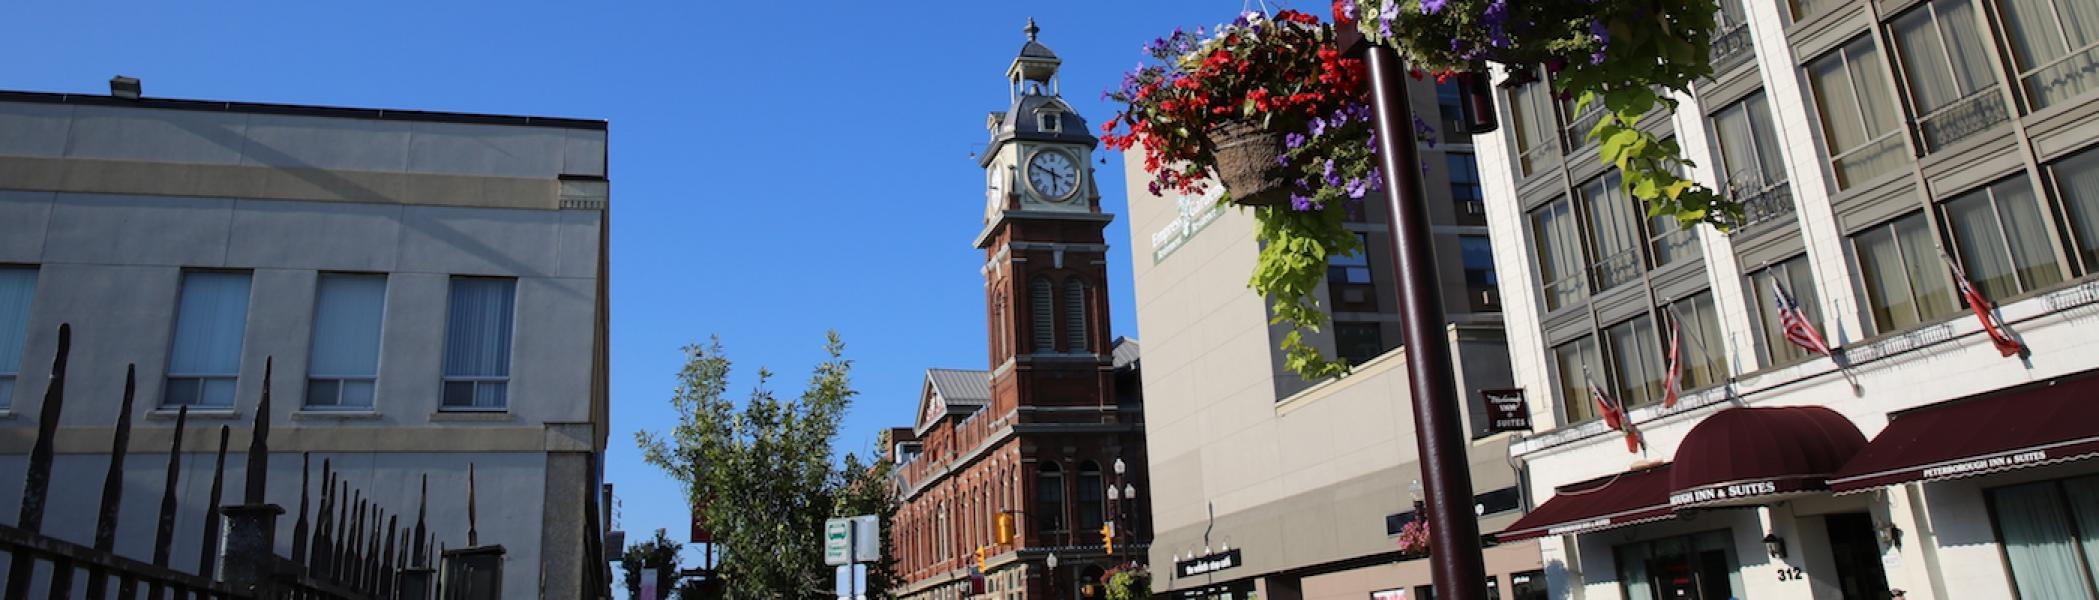 The town hall clock in downtown Peterborough